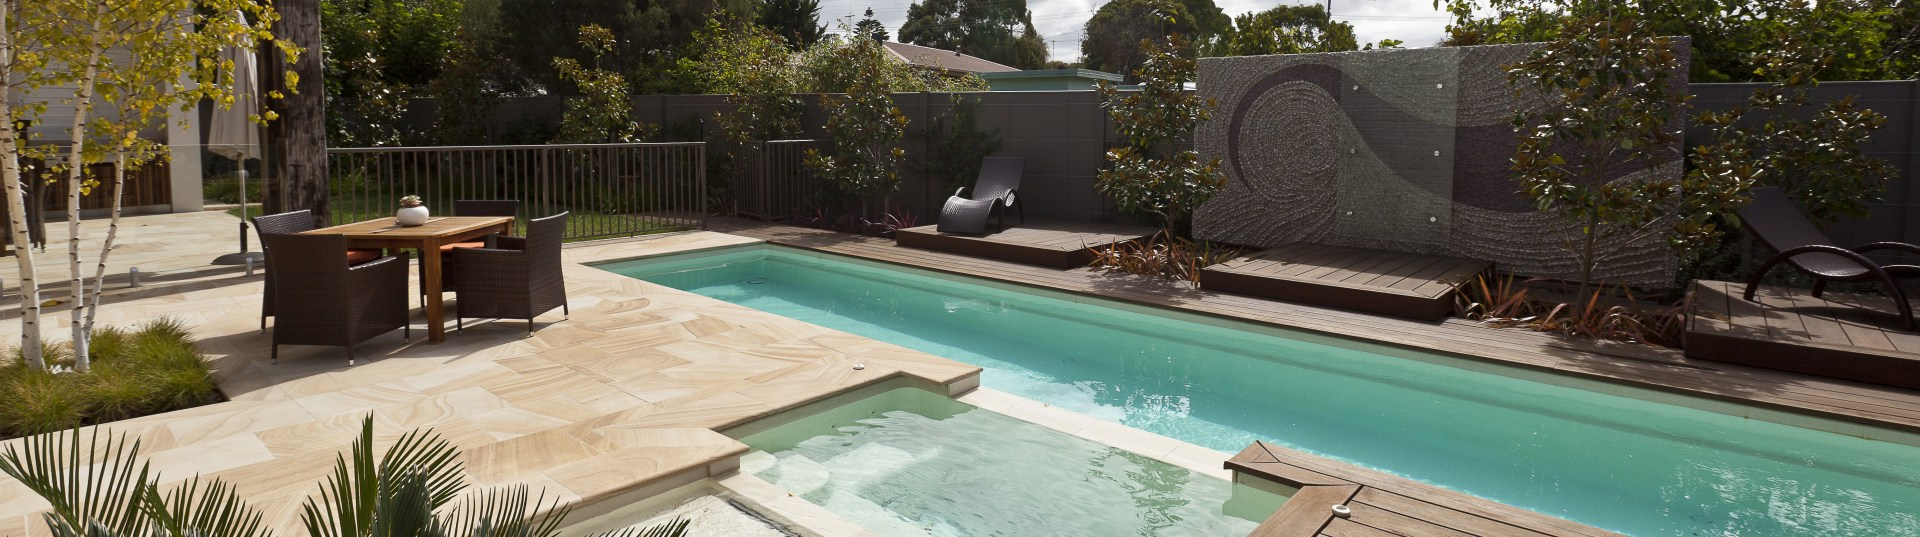 Swimming pool landscaping ideas to boost your property's value